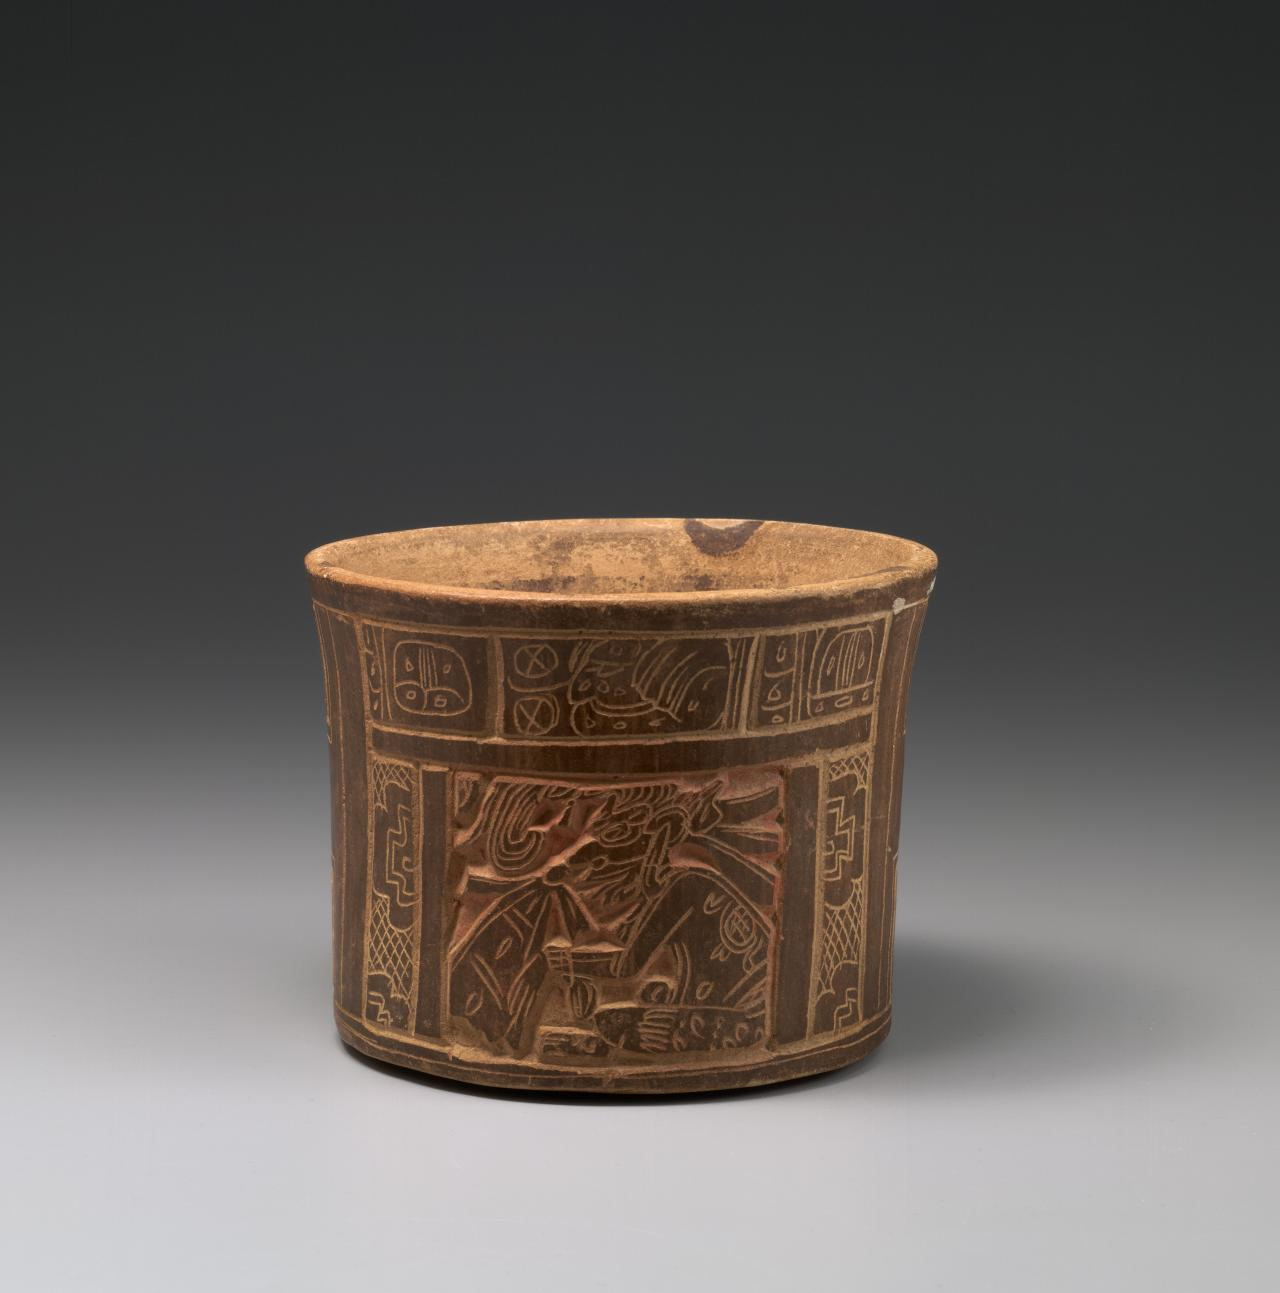 Carved vase with seated ruler and glyph bands